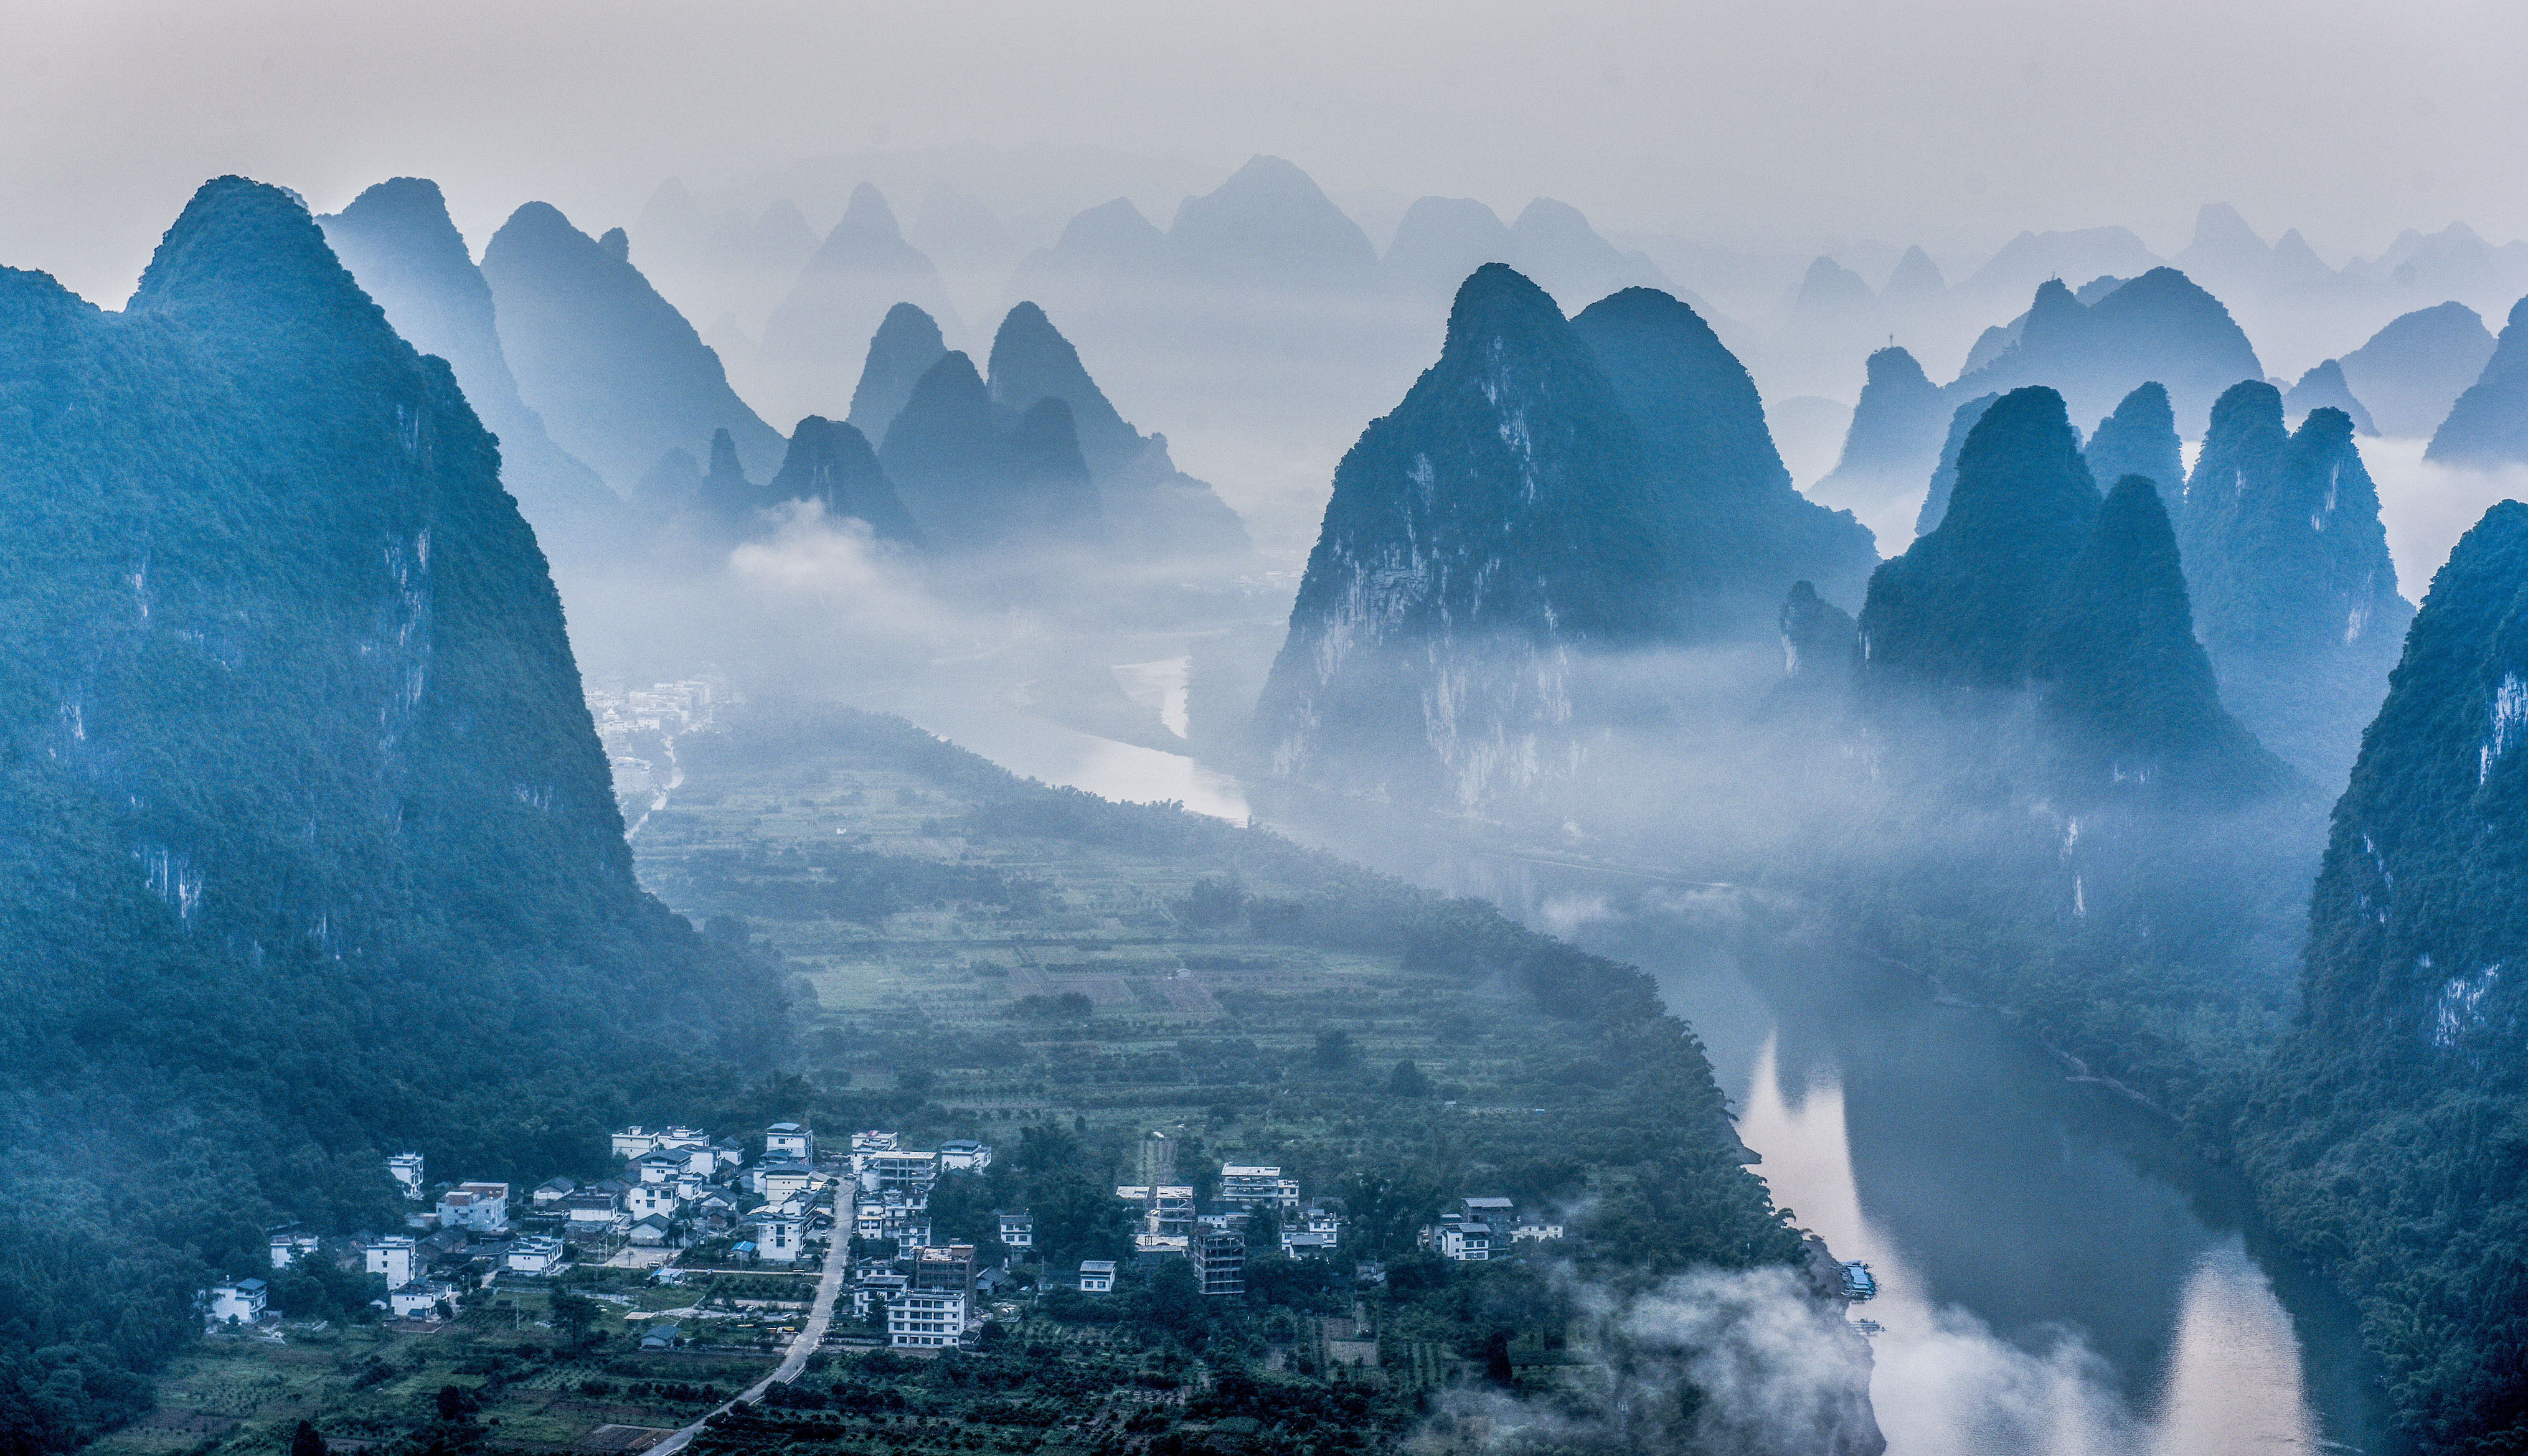 The mountains and hills are surrounded by mist and cloud along the Li River at sunrise in Yangshuo county.